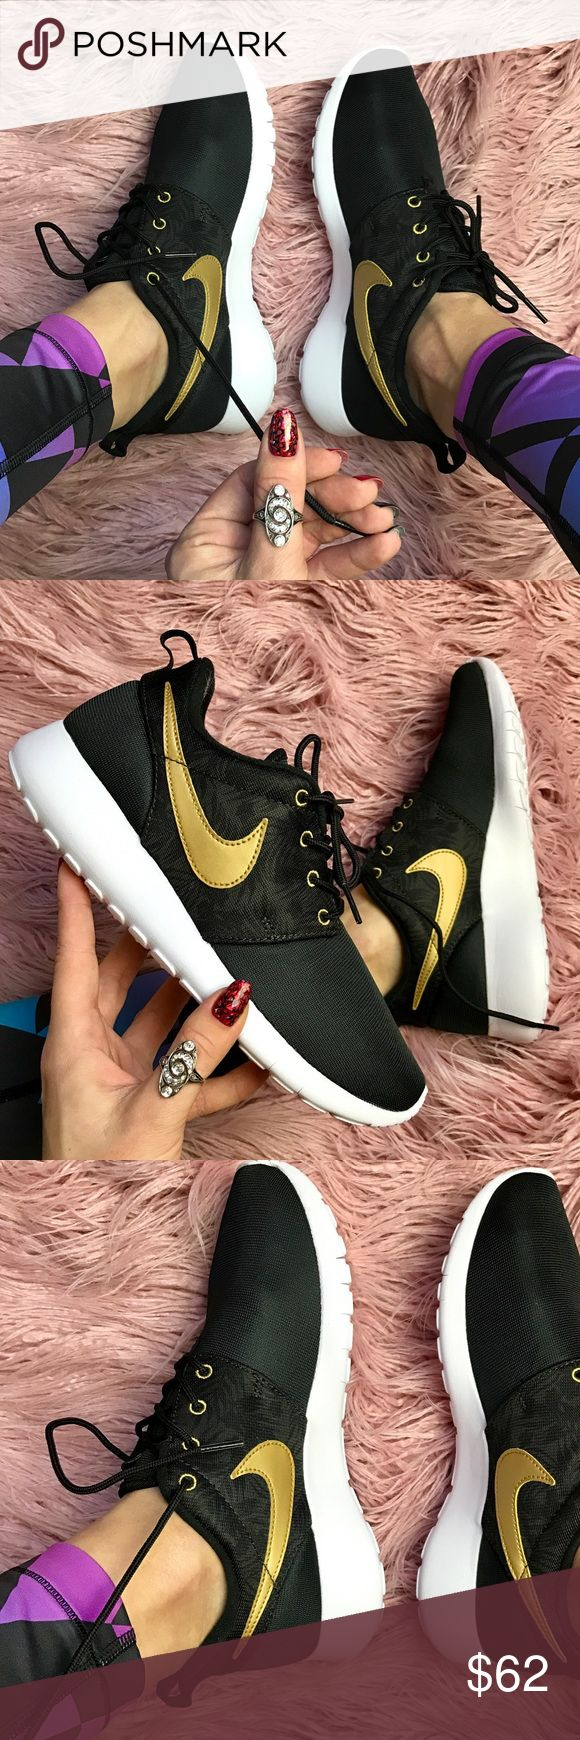 NWT Nike roshe black with  gold swoosh Brand new no box lid,price is firm!! Size 7 Y -women's 8.5 Simplicity at its finest.  The upper is made of a mix of lightweight and very breathable materials. Full-length Phylon™ midsole with a Solarsoft sockliner supplies premium comfort. The Phylon™ outsole with a Waffle®-inspired design makes for excellent traction. Nike Shoes Sneakers